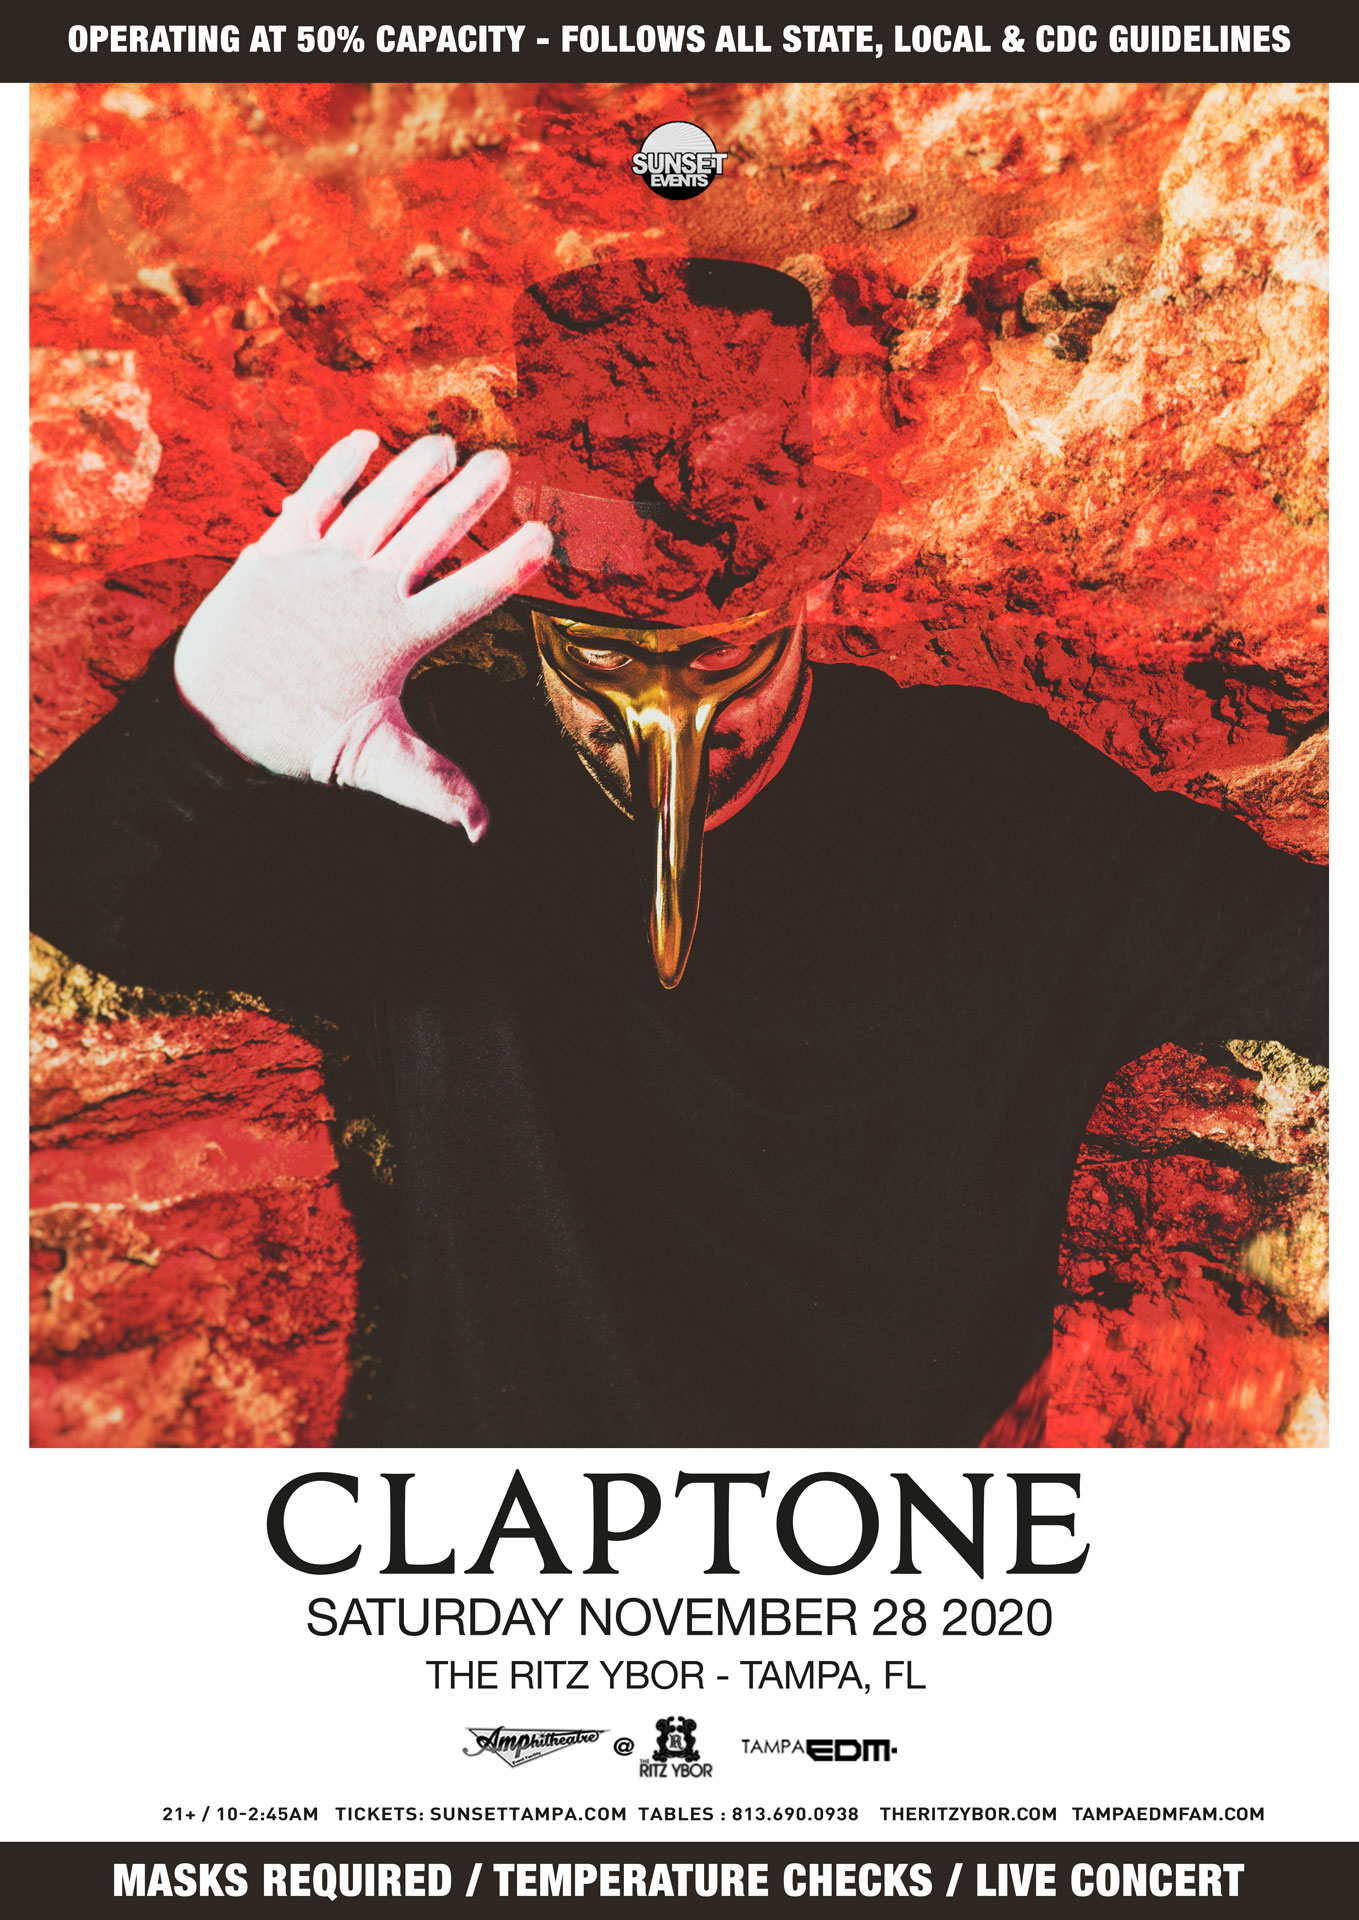 Claptone for Sunset Saturdays at The RITZ Ybor – 11/28/2020